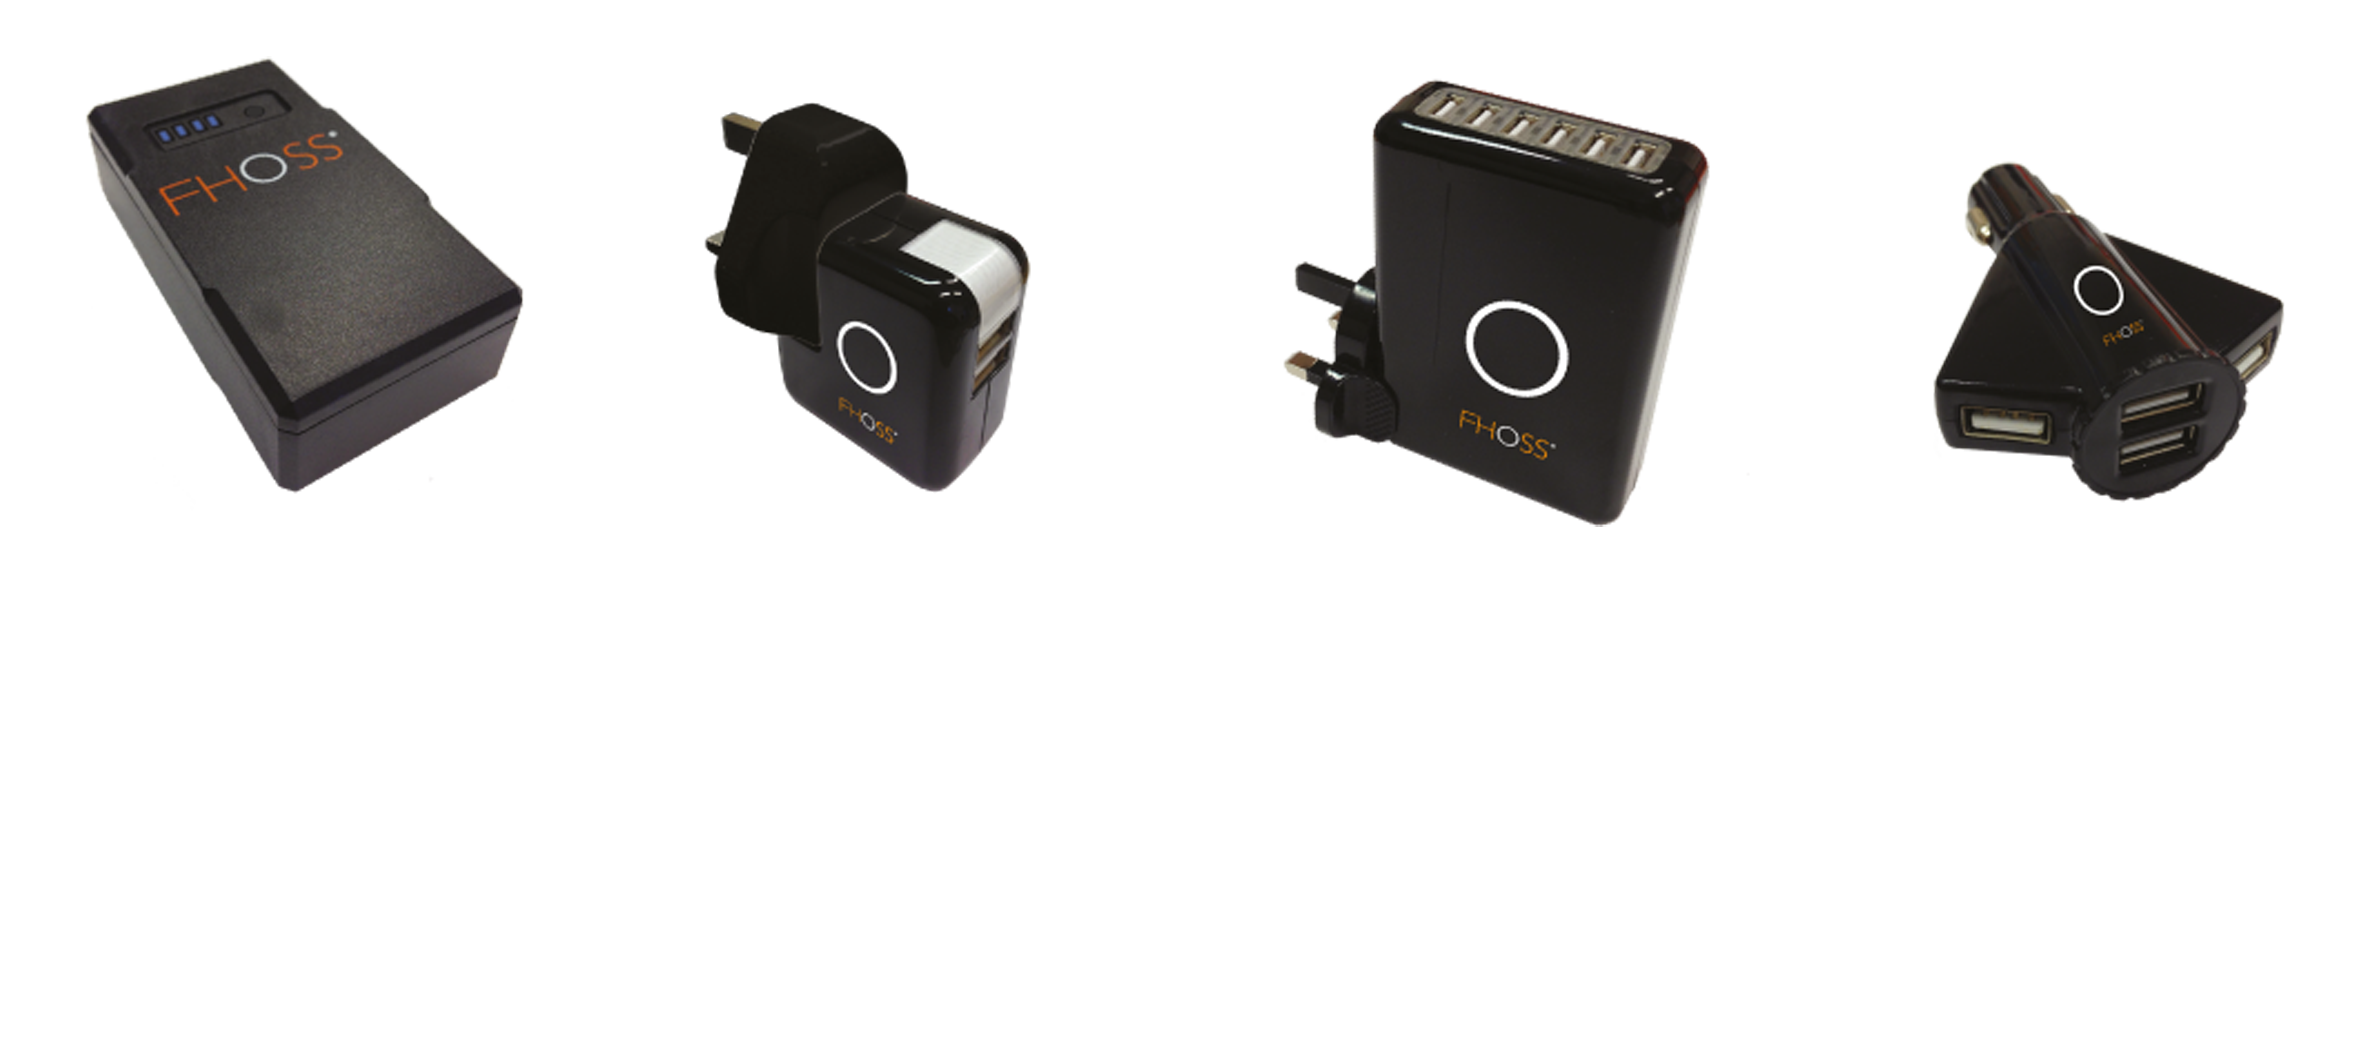 Virtus Powercell & Charging options    Dimensions:  43mm x 80mm x 22mm • EMC Compliant • CE Compliant   From left:  Fhoss Virtus Powercell, 2 Port Mains Charger, 6 Port Gang Charger, 4 Port In Car Charger (2 post also available).  Designed with safety in mind, the powercell is compact, robust, water resistant and will provide power to continuously illuminate the sealed Fhoss illuminated strip for up to 12 hours with a 4 hour charge time.   Test Criteria /  RoHS compliant • IP 67 Connector • Recyclable